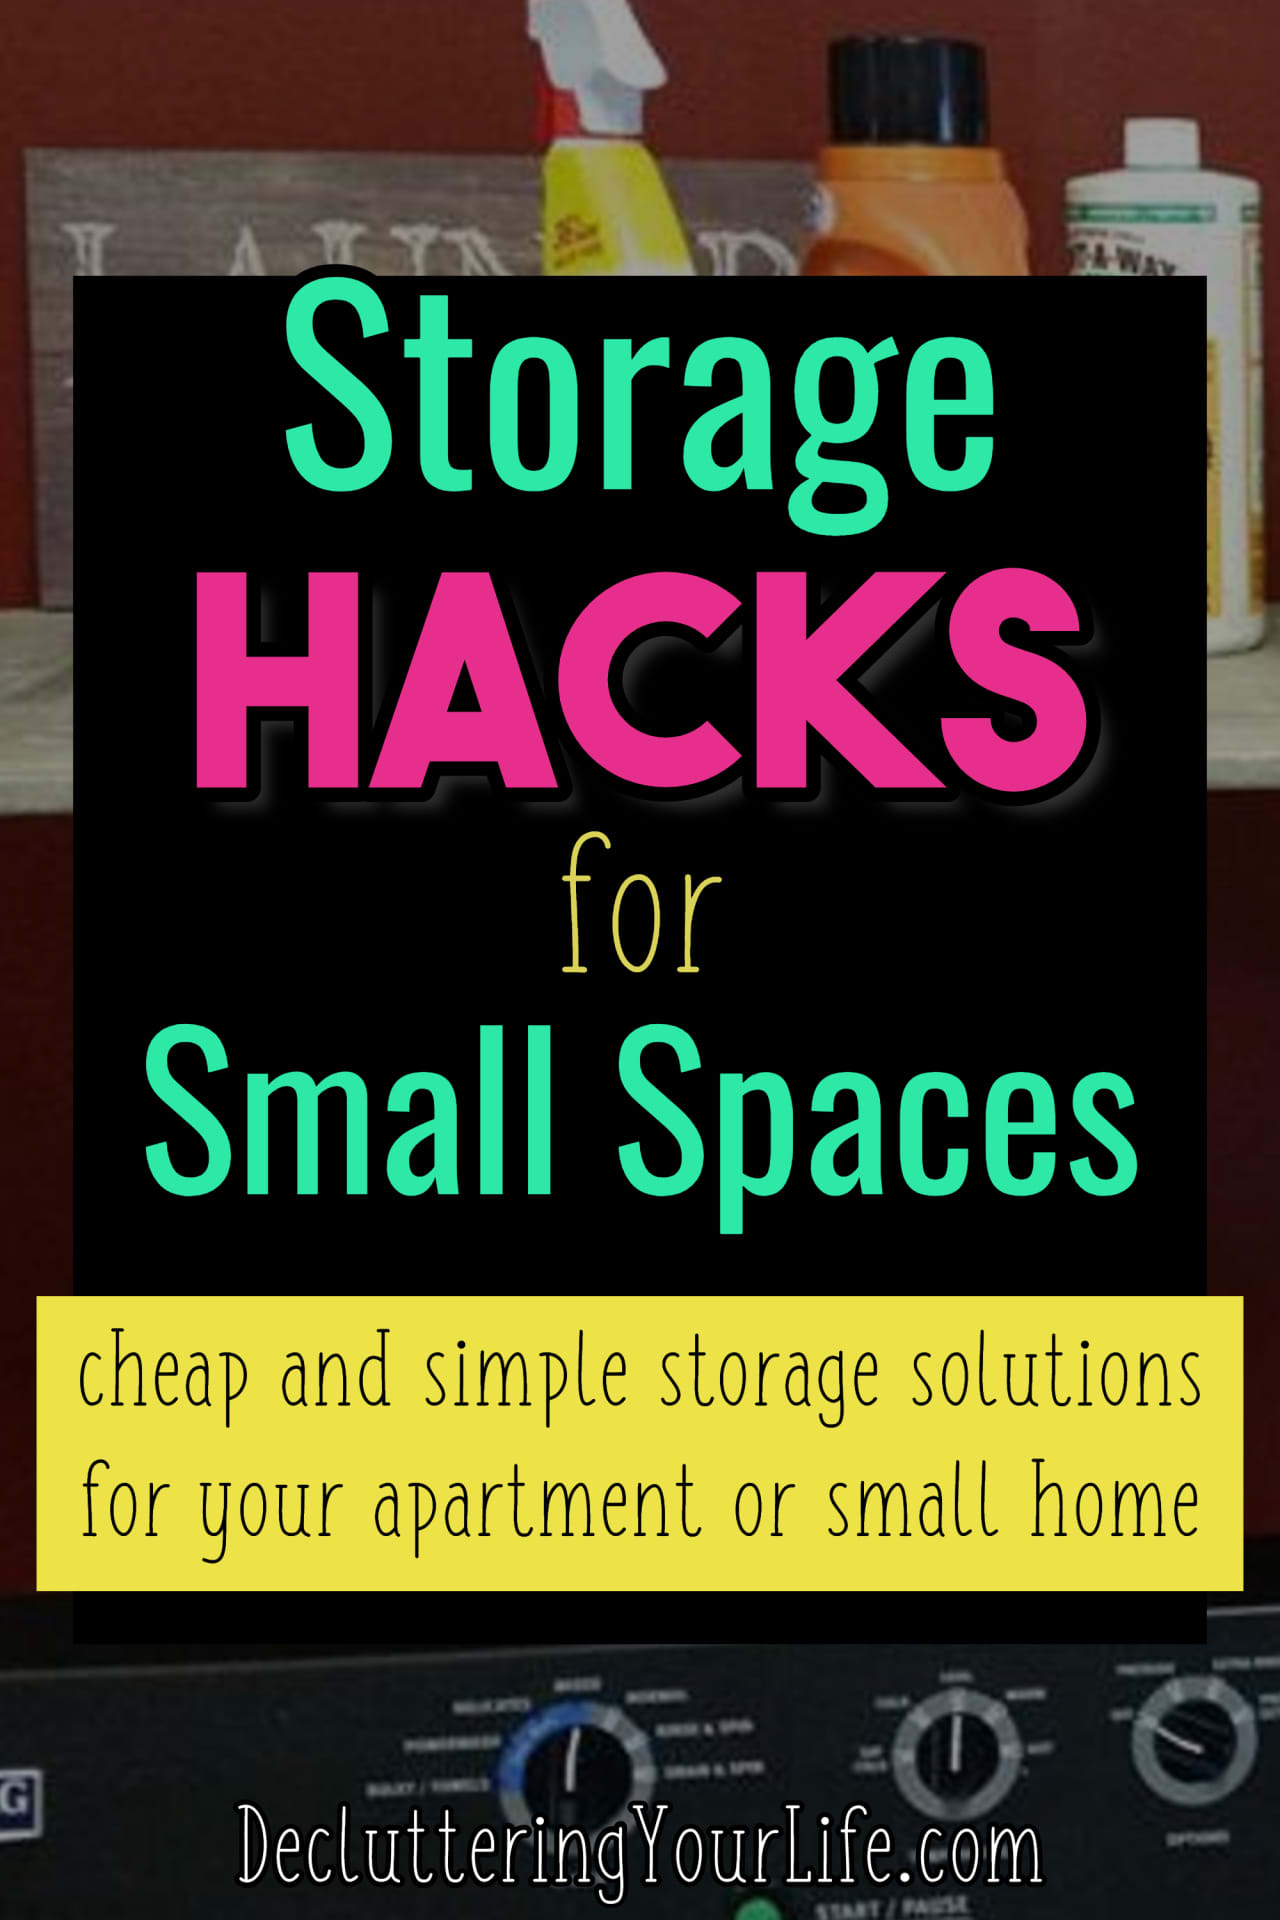 Storage and Organization Hacks That Really Work To Organize Your Clutter When You Live in a Small Home, Apartment, Dorm Room, or Condo.  These DIY organization and storage solutions are perfect for organizing on a budget - LOTS of pictures for inspiration to get organized and stay organized.  Ready to declutter your life in your small space?  Try these tips and tricks and organize your life...